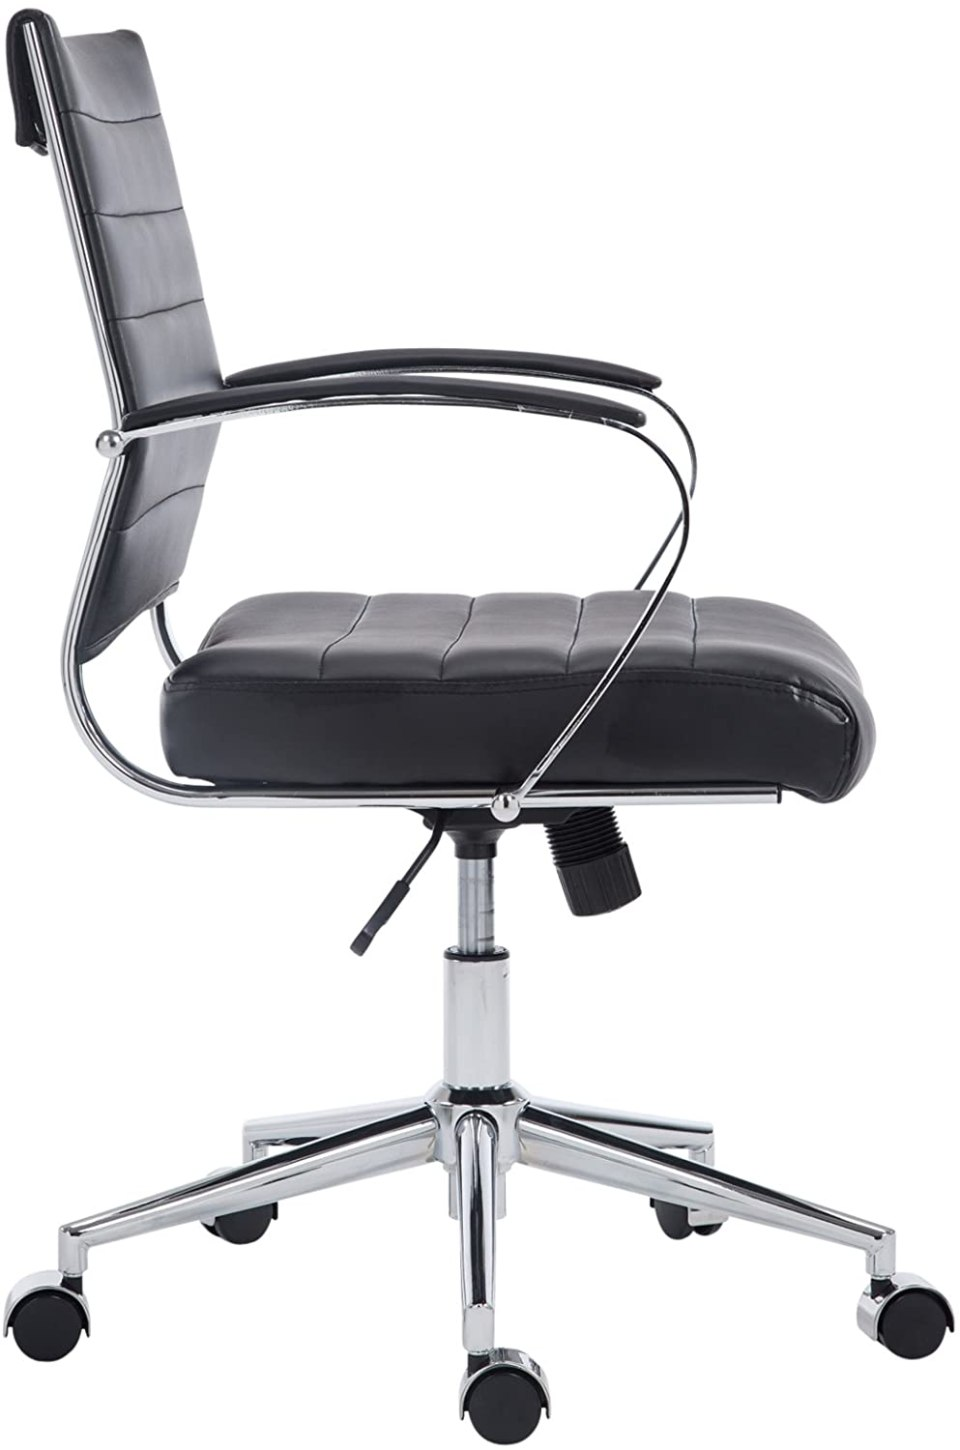 Poly and Bark Tremaine - Best Office Chairs